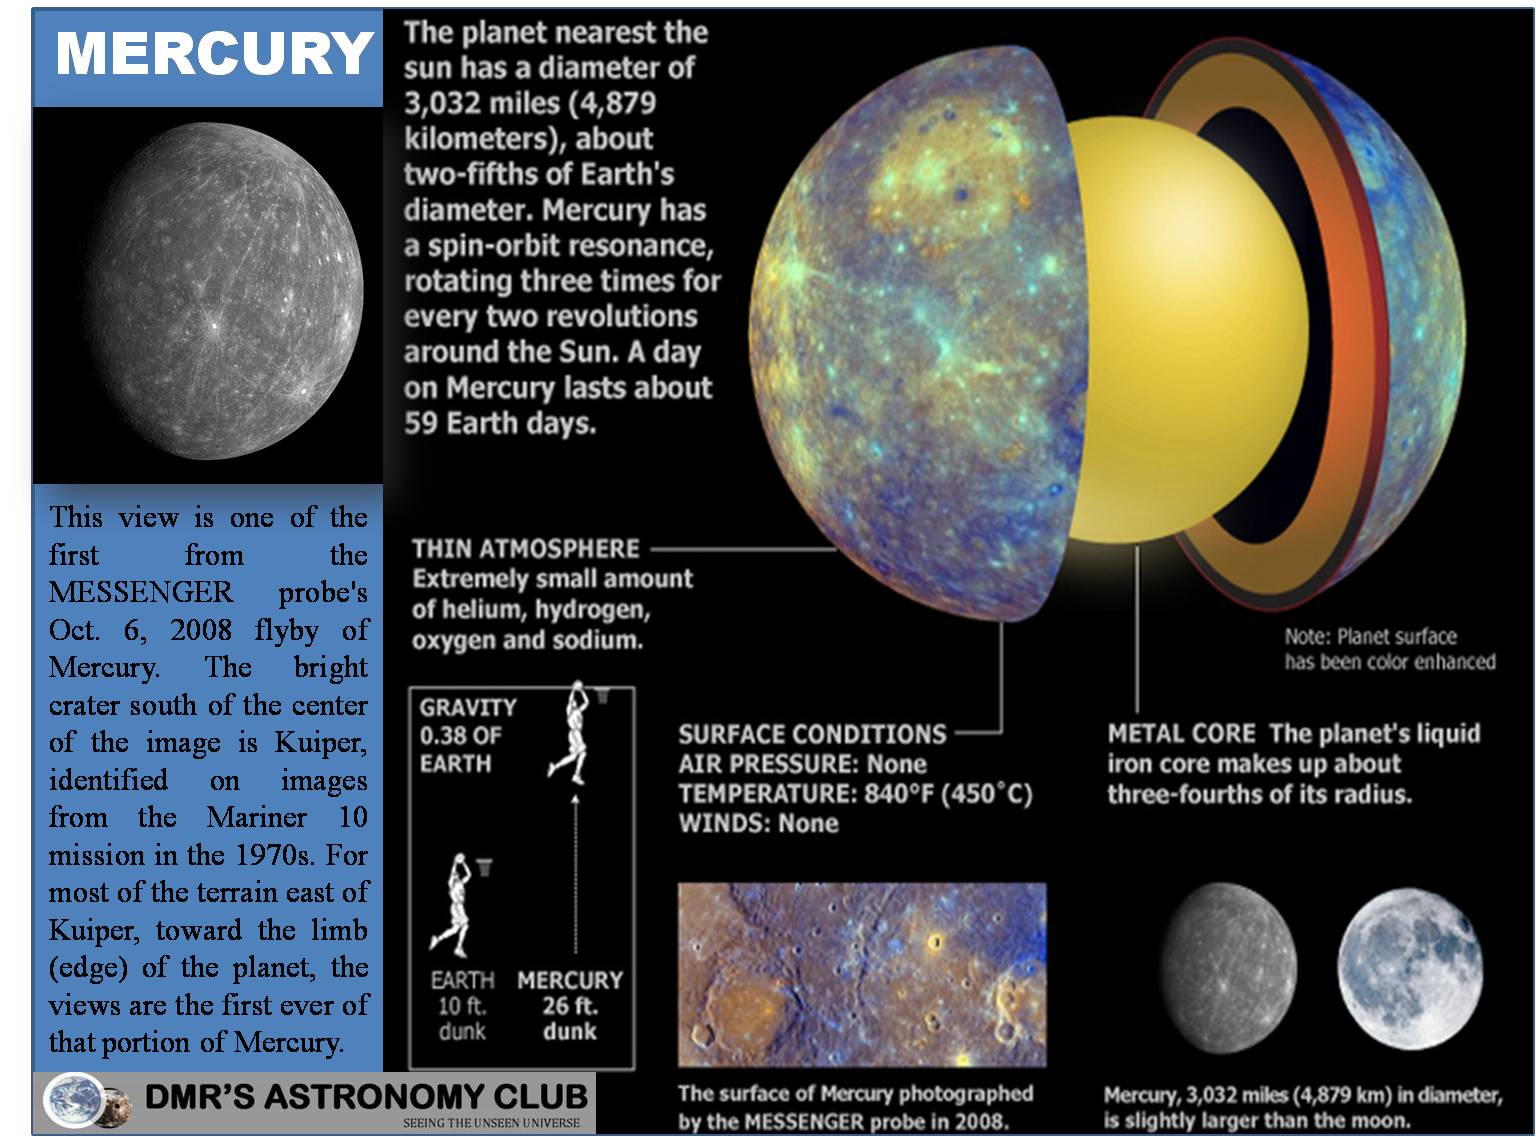 DMRS ASTRONOMY CLUB Solar System Facts about Mercury